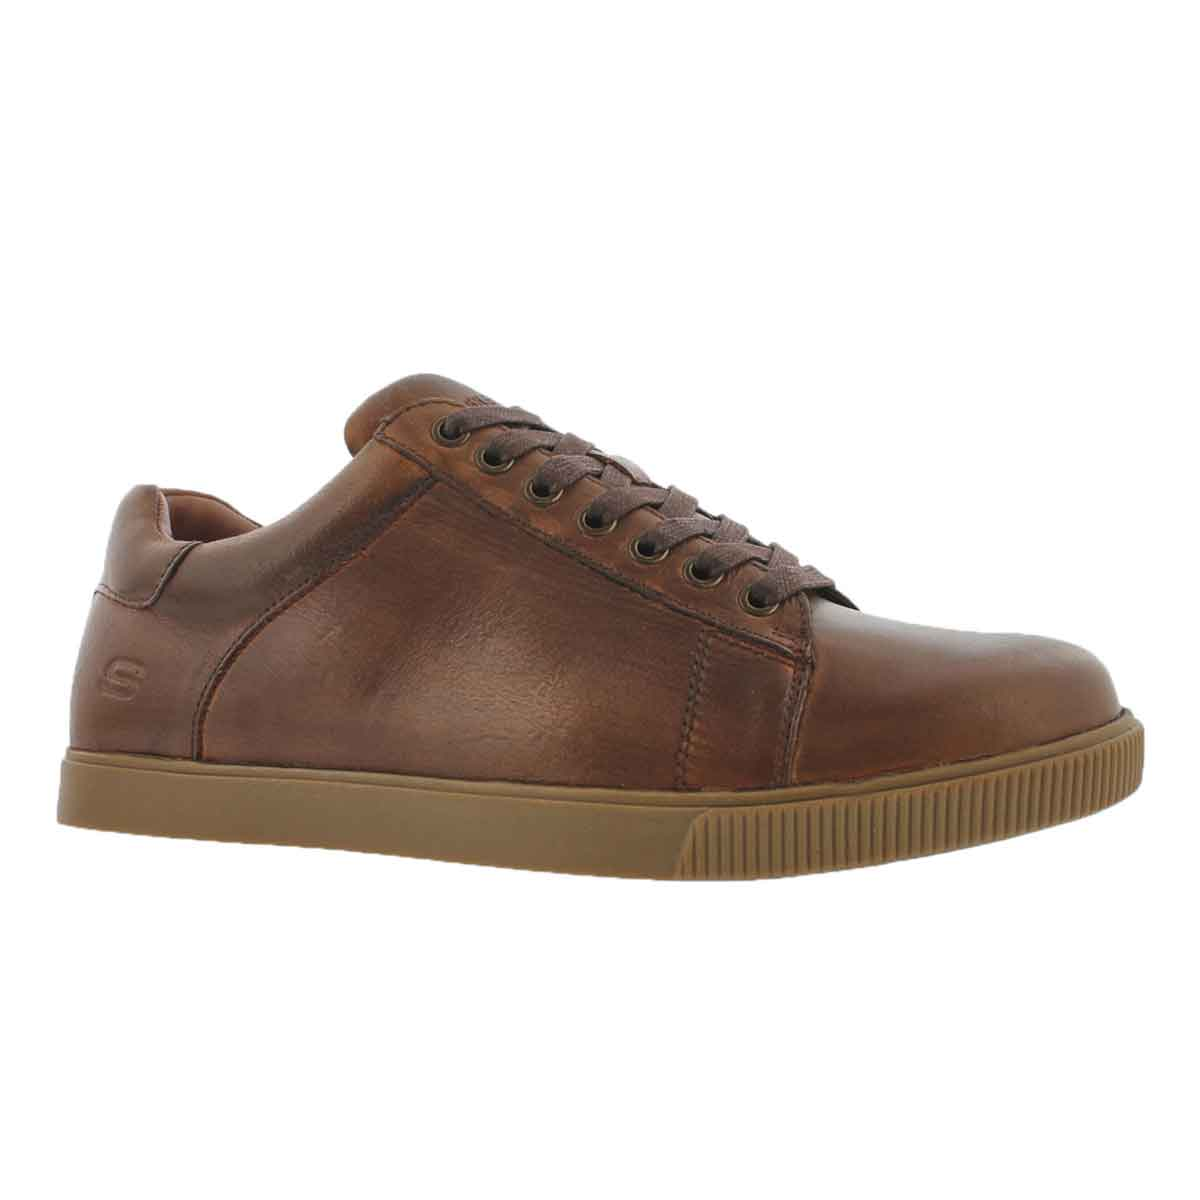 Men's VOLDEN FANDOM tan lace up sneakers